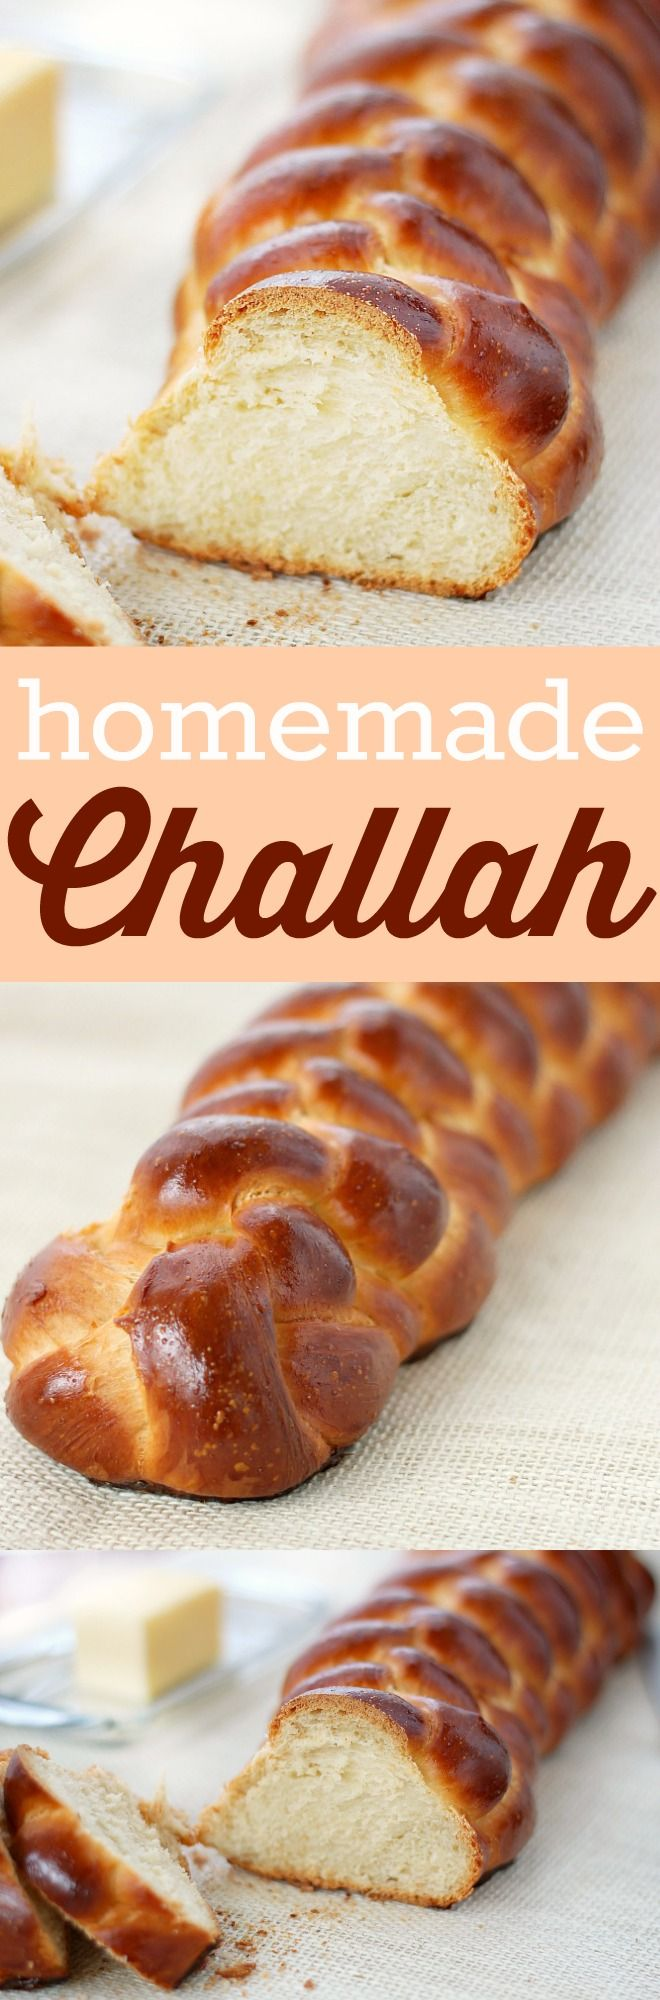 Homemade challah - my go-to bread recipe! Easier than you think!: